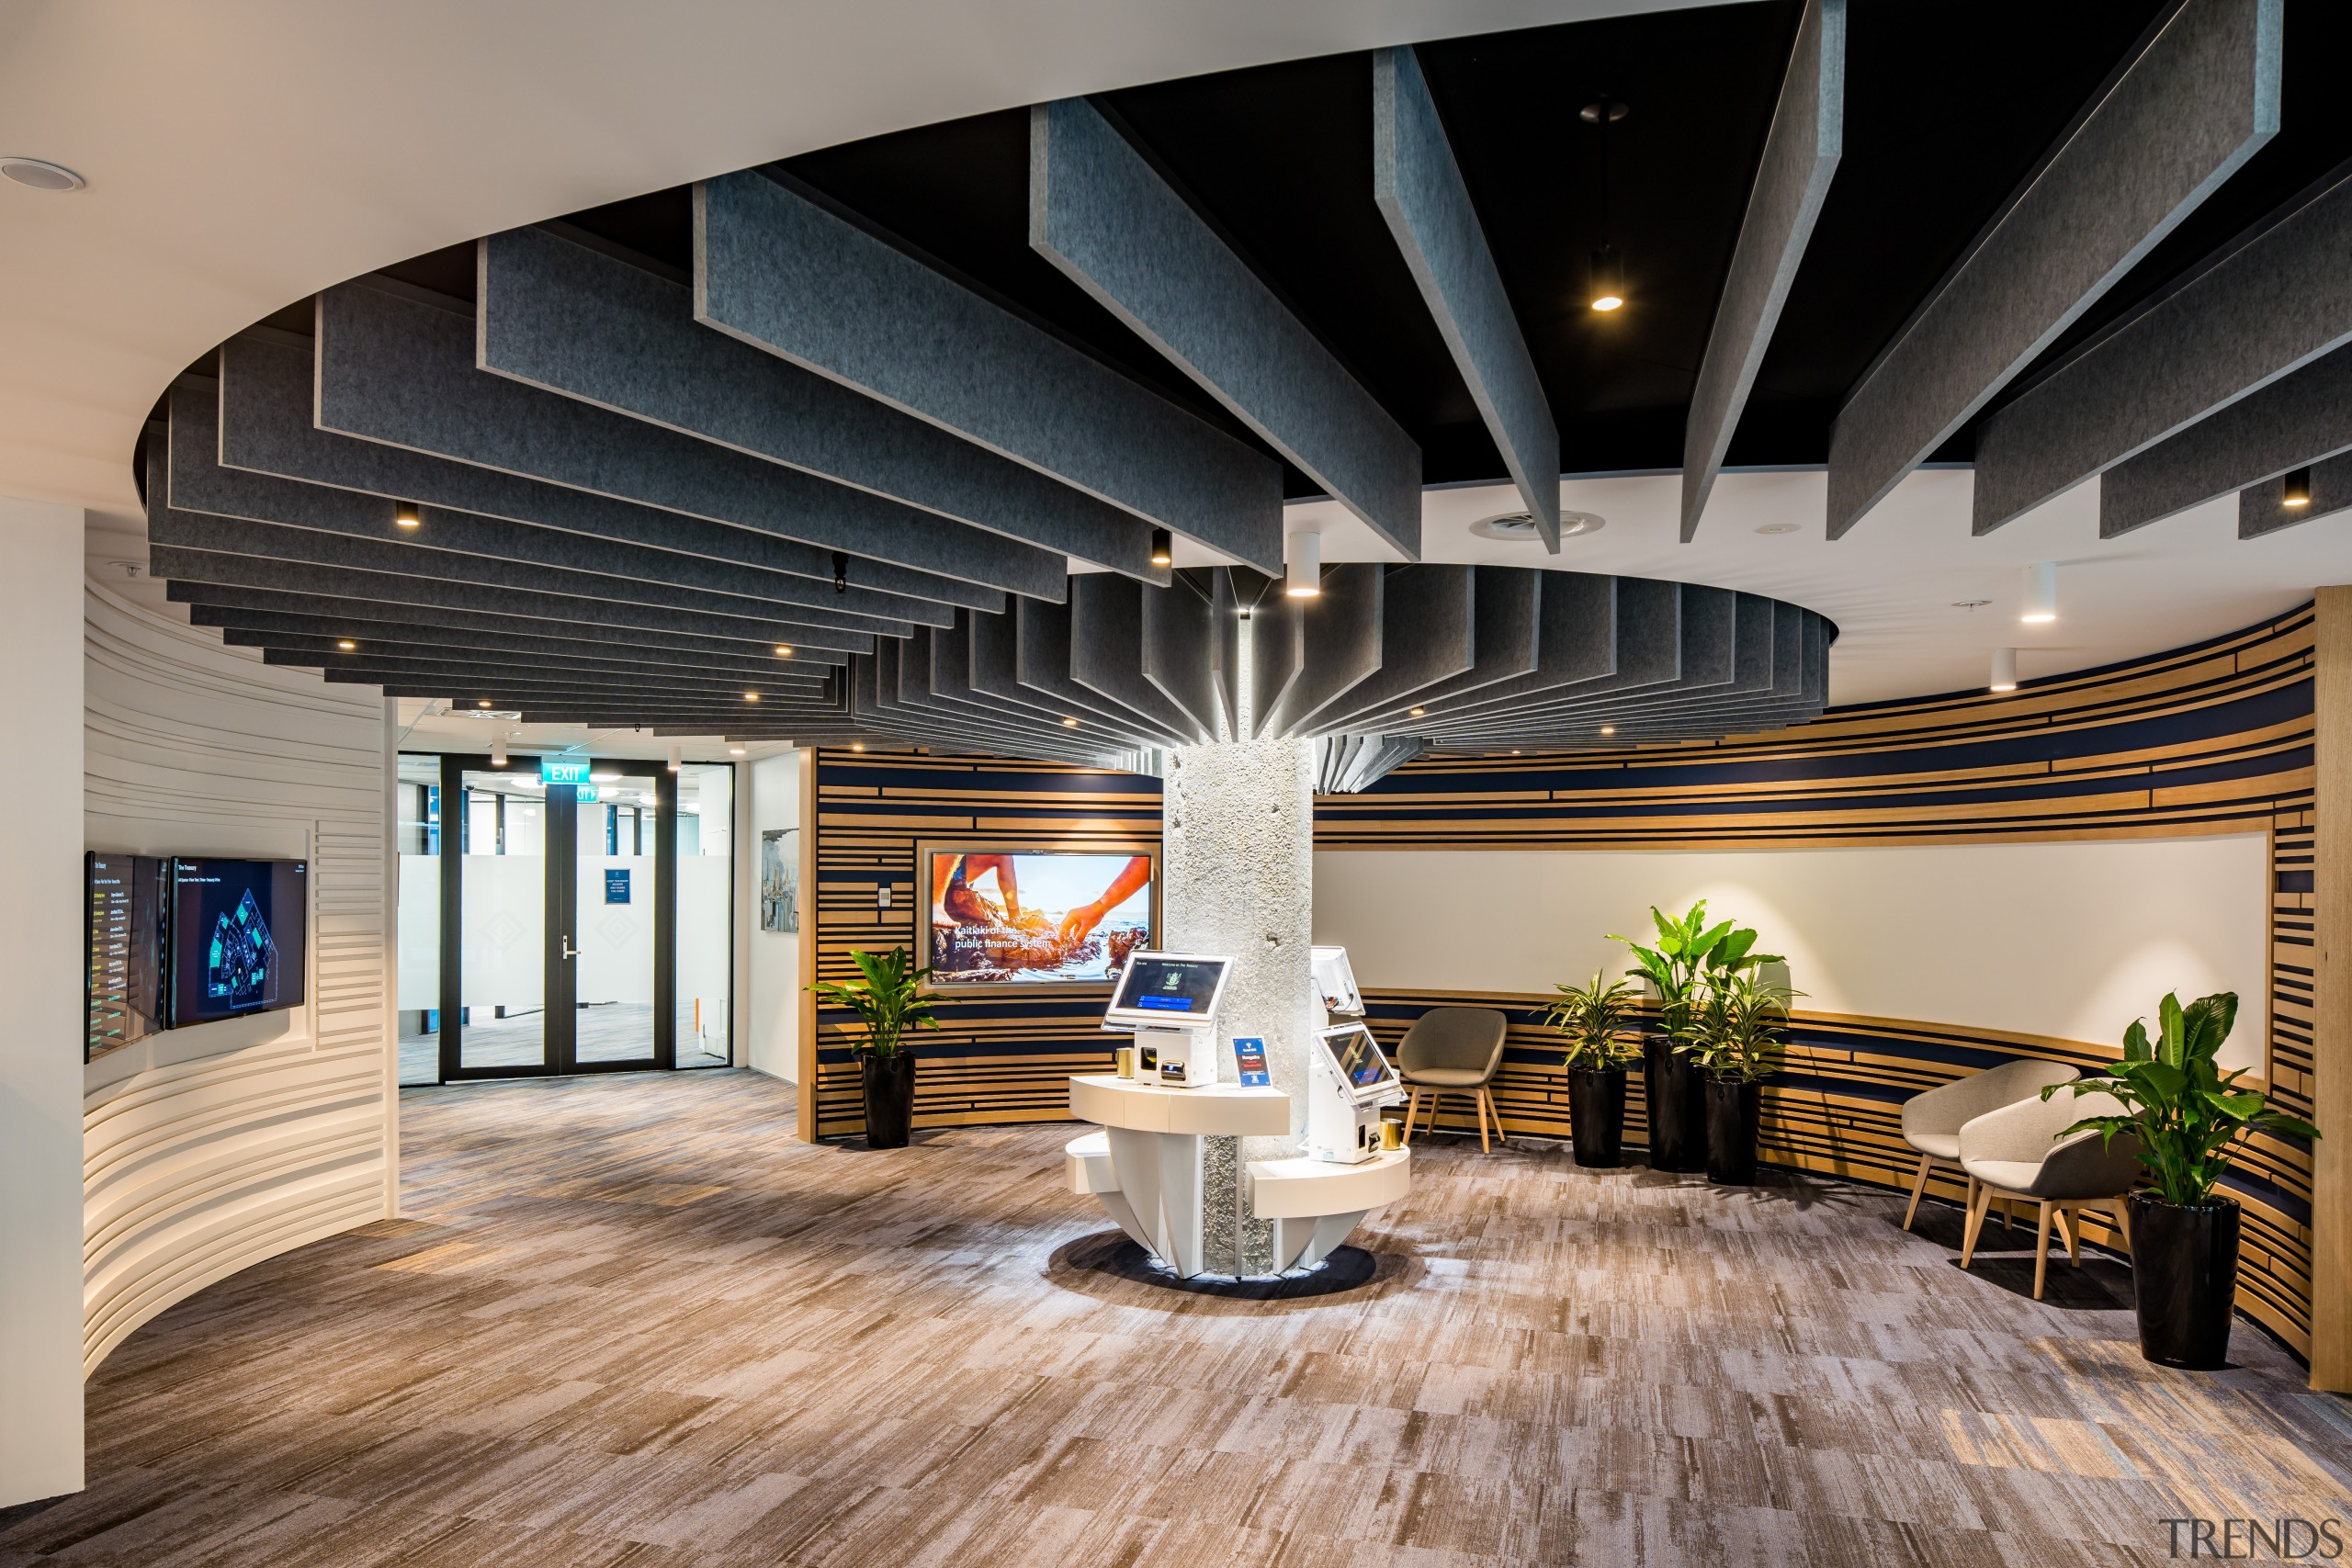 An immovable column is disguised by a koru architecture, building, hardwood floor, Treasury Office, interior design, timber flooring, lobby, black, gray, Lobby, Precinct Properties, Workspace Architects